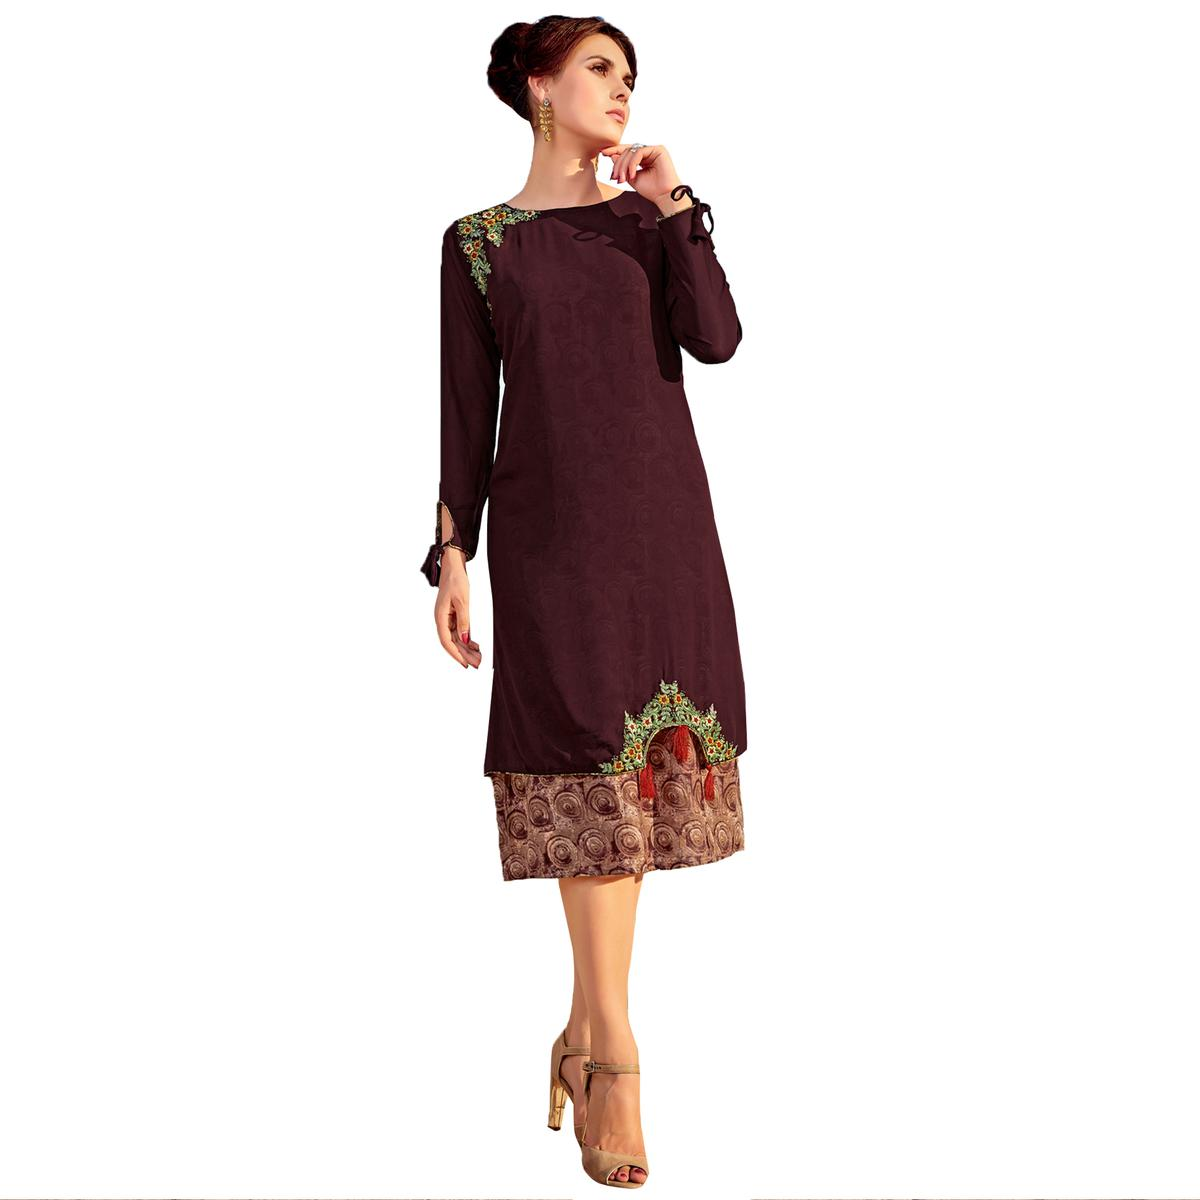 Mystic Brown Colored Party  Wear Embroidered Georgette Kurti.